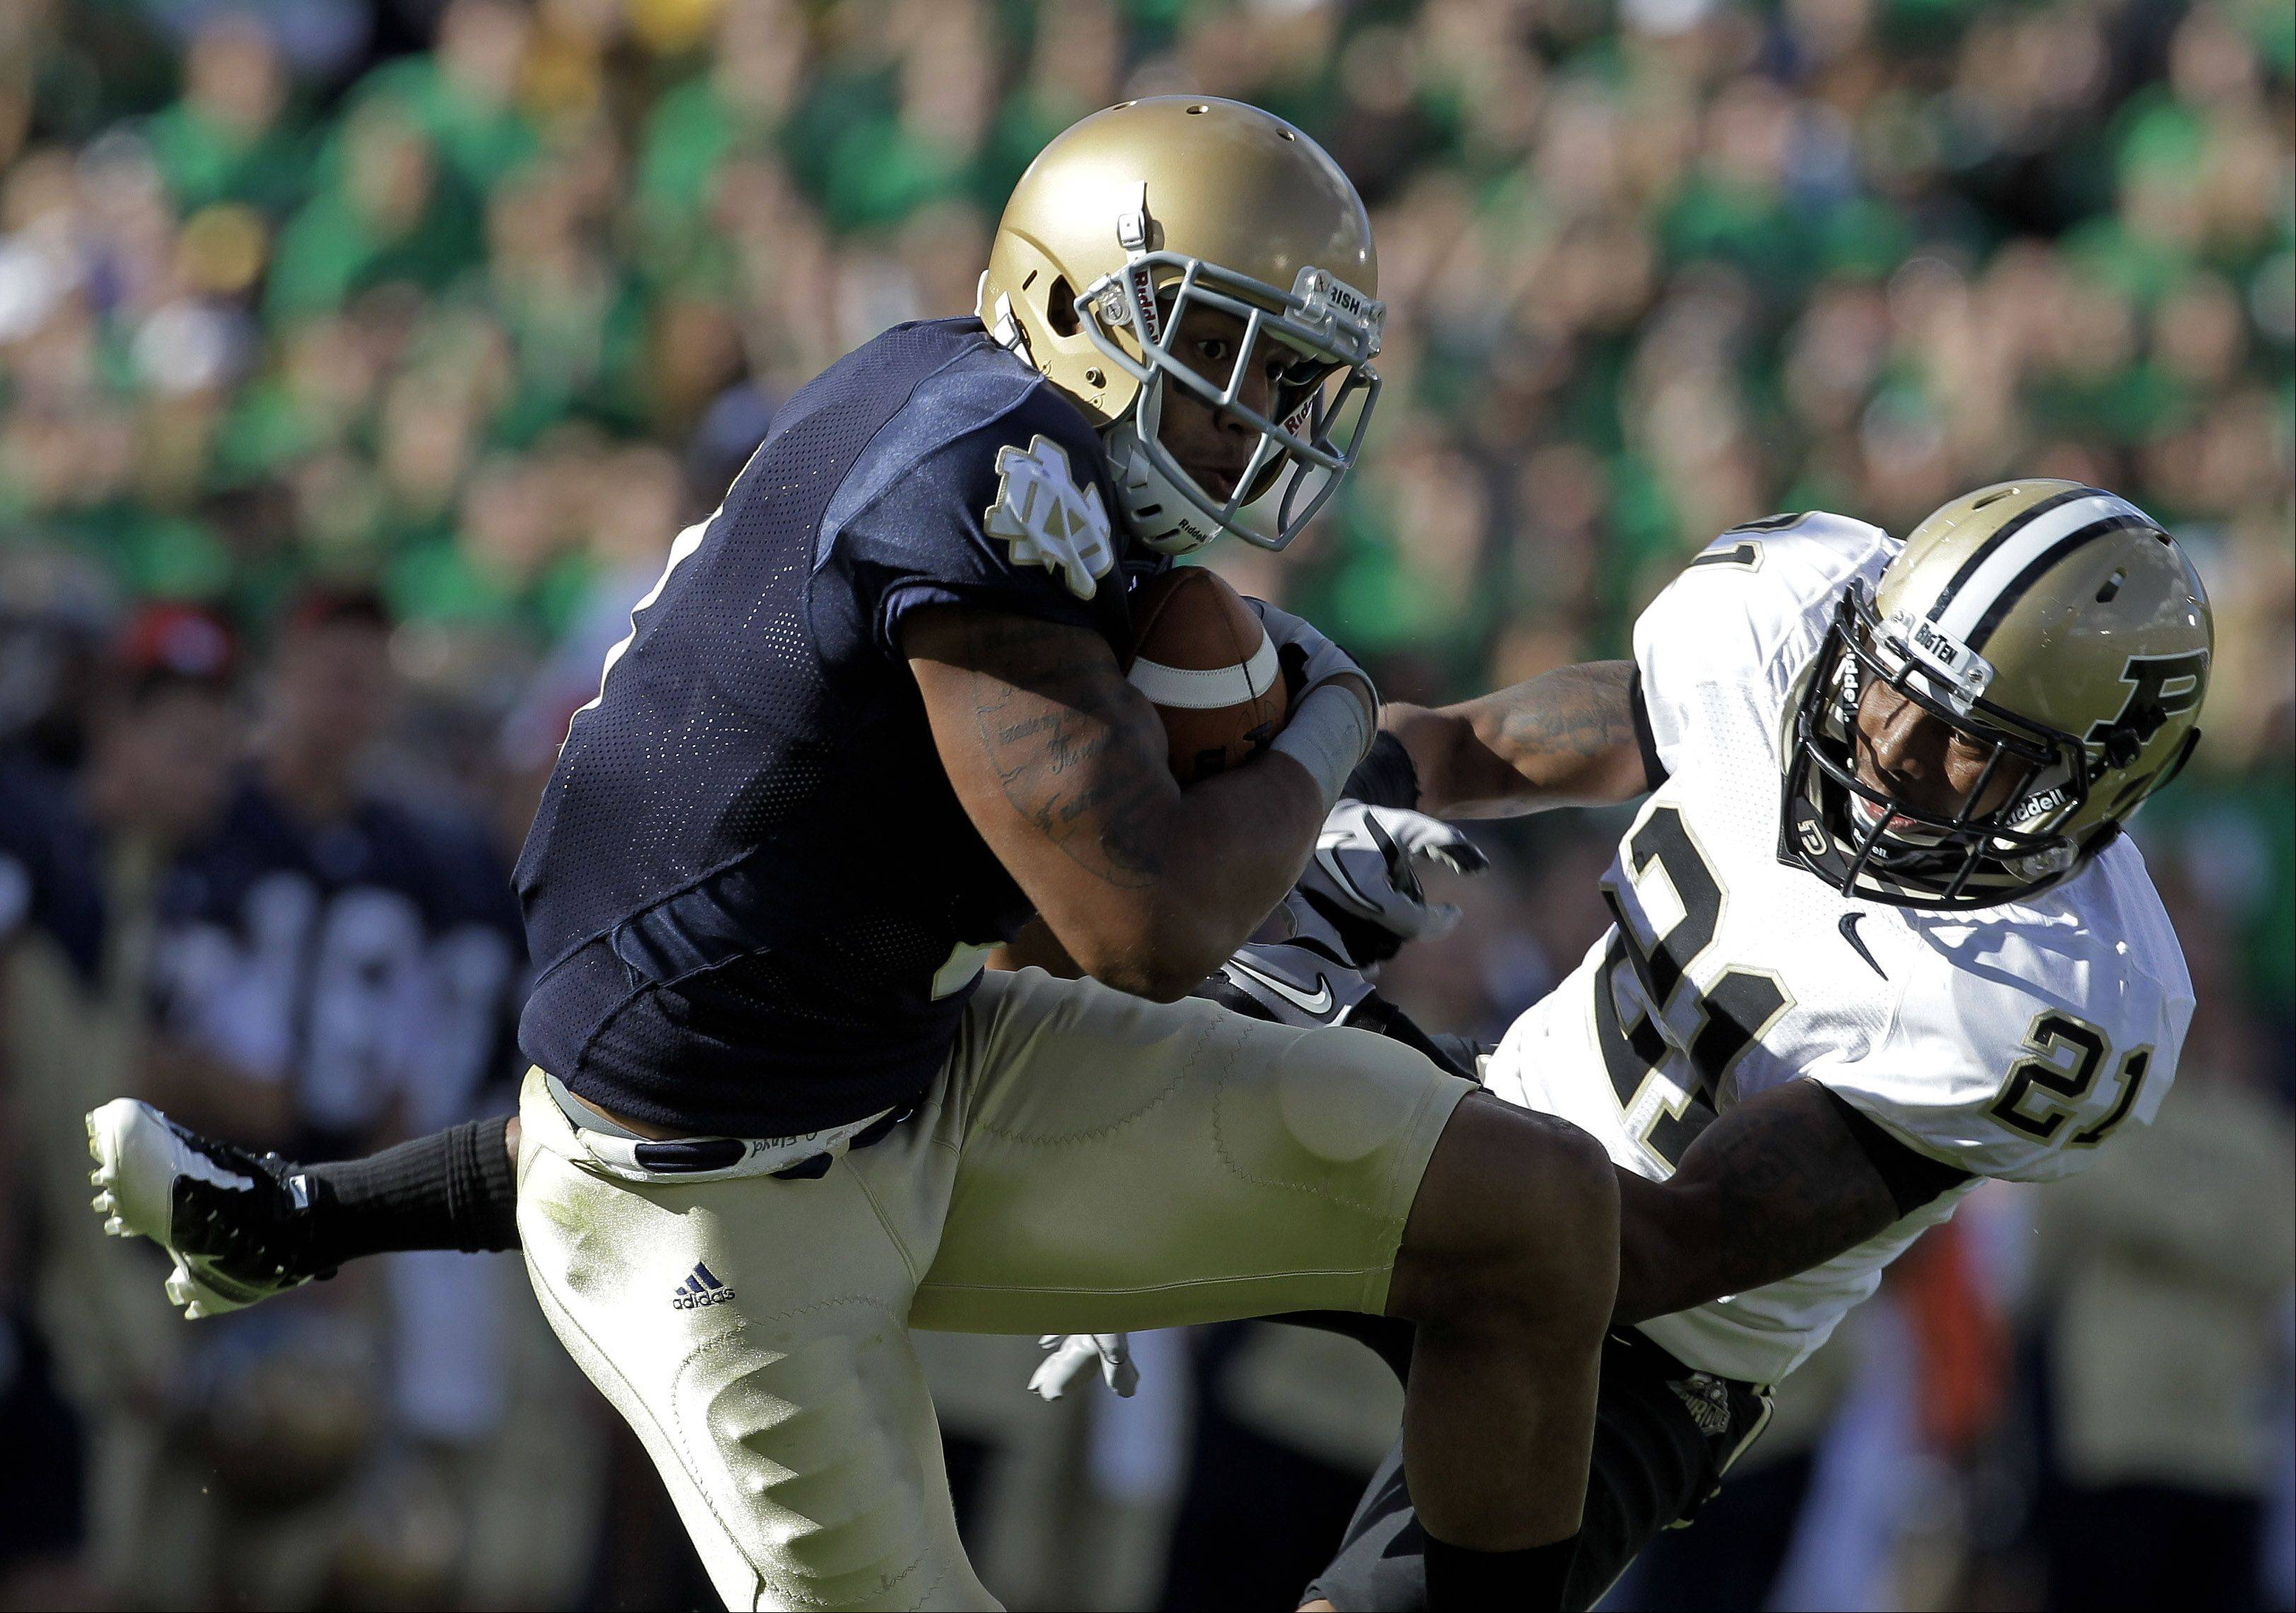 Notre Dame wide receiver Michael Floyd is projected by many experts to off the board by the time the Bears pick.